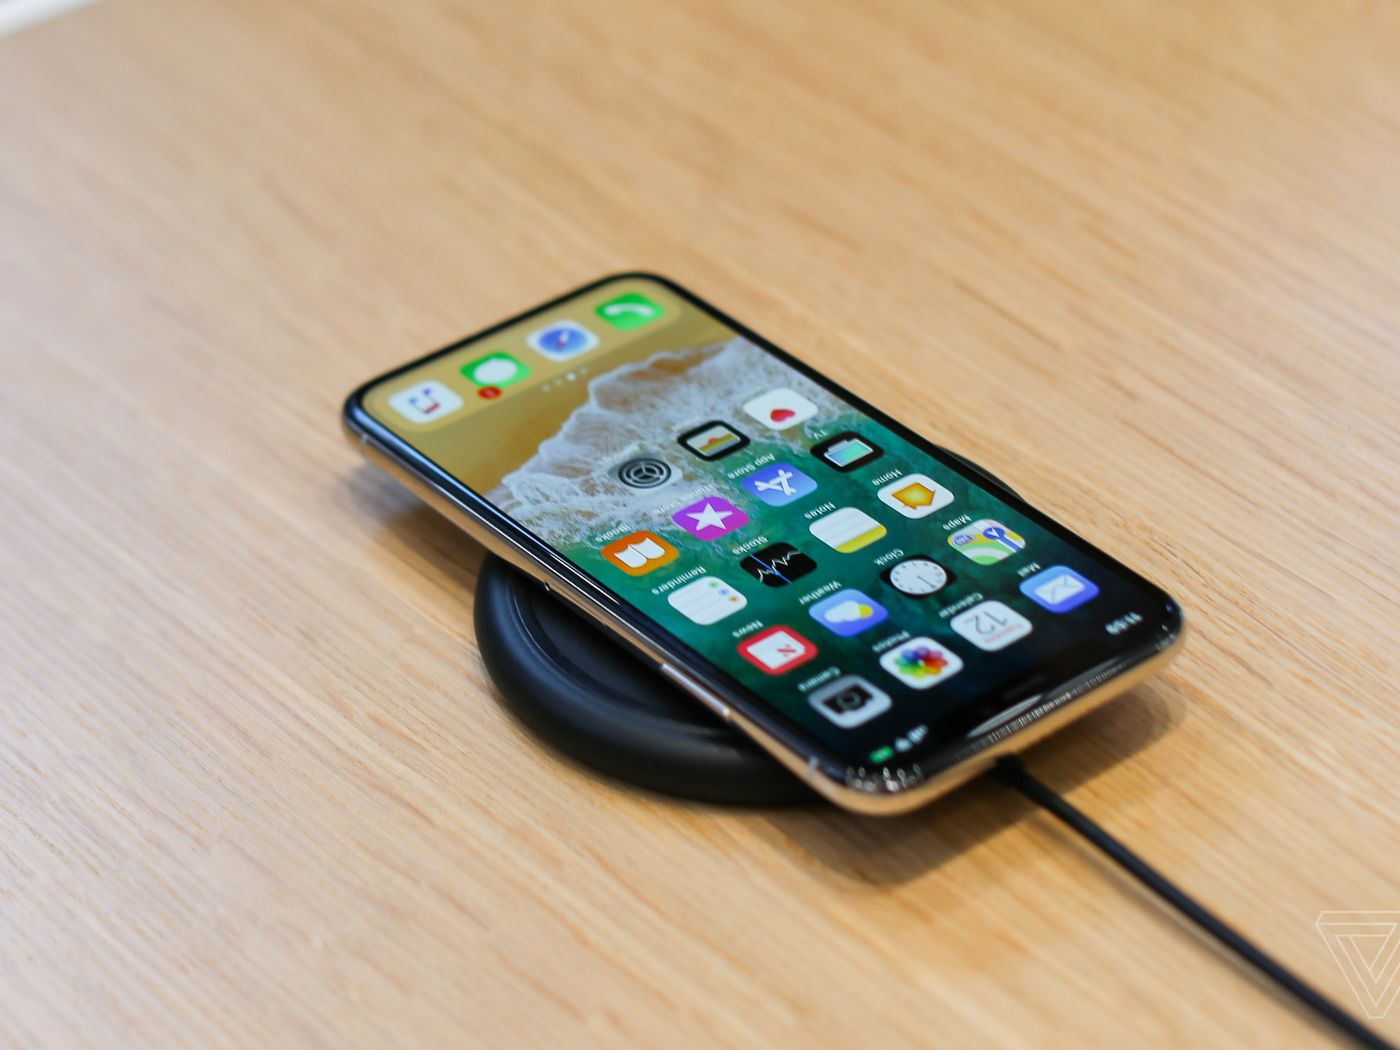 Iphone X Screen Repair Will Cost 279 The Verge